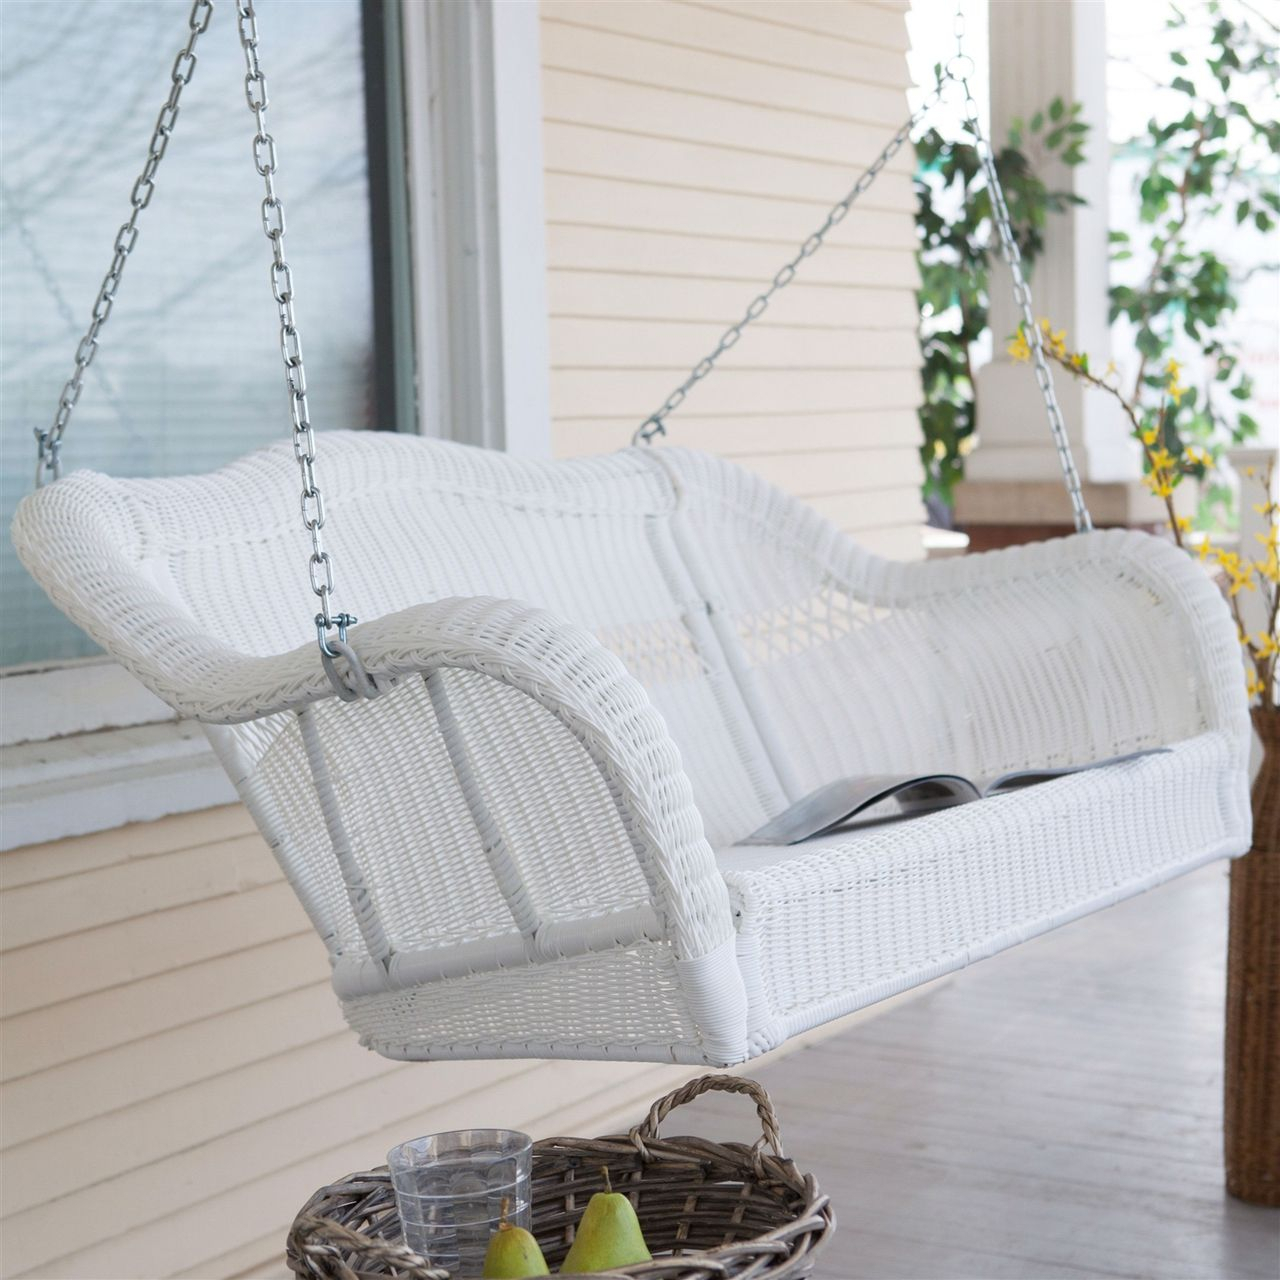 White Resin Wicker Porch Swing, Hanging Chain – 600 Lb With Regard To Porch Swings With Chain (View 6 of 25)